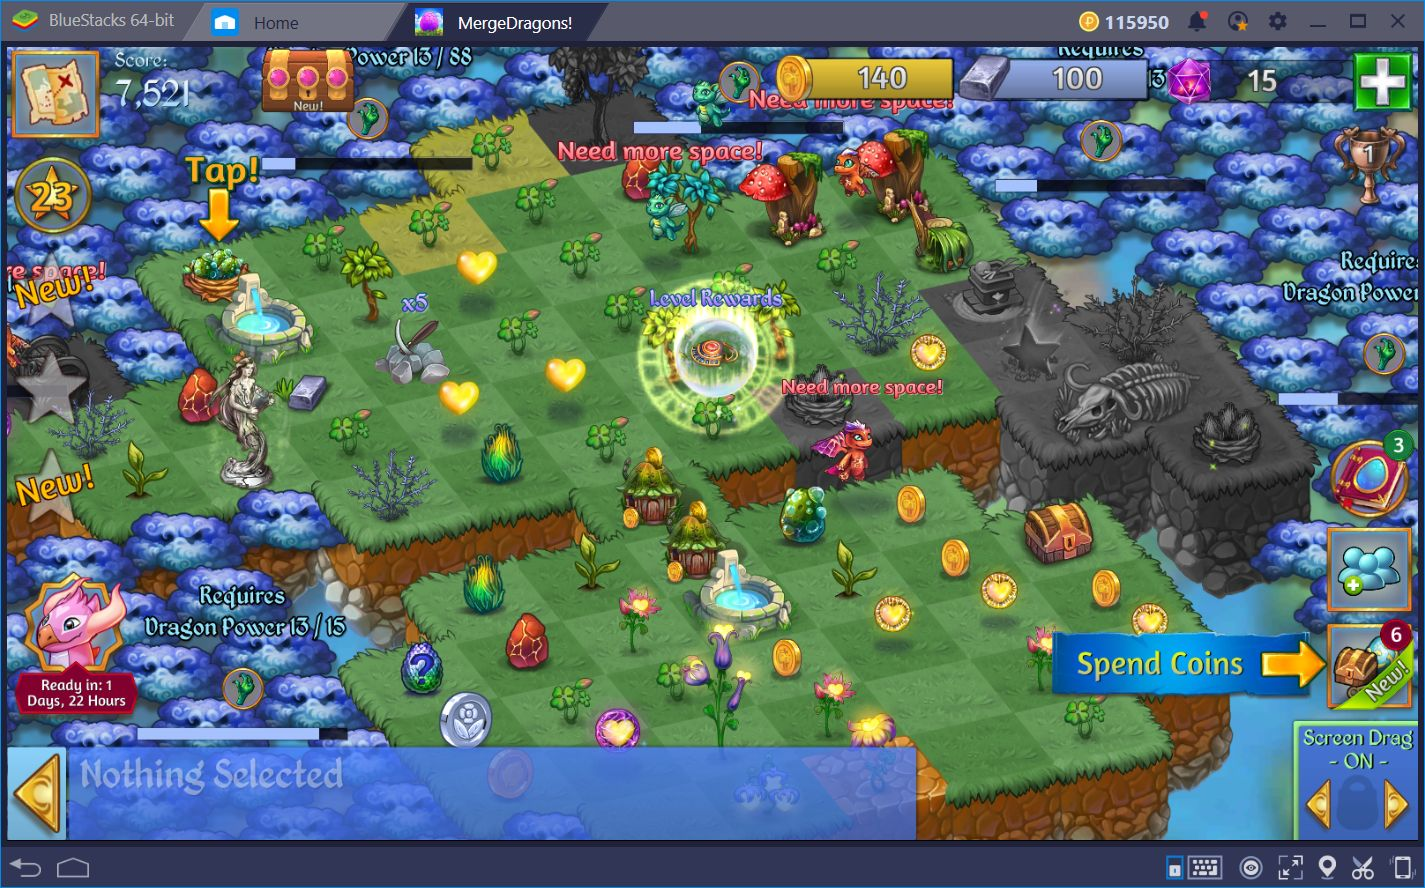 Merge Dragons! on BlueStacks—Improve your Gameplay with our Platform